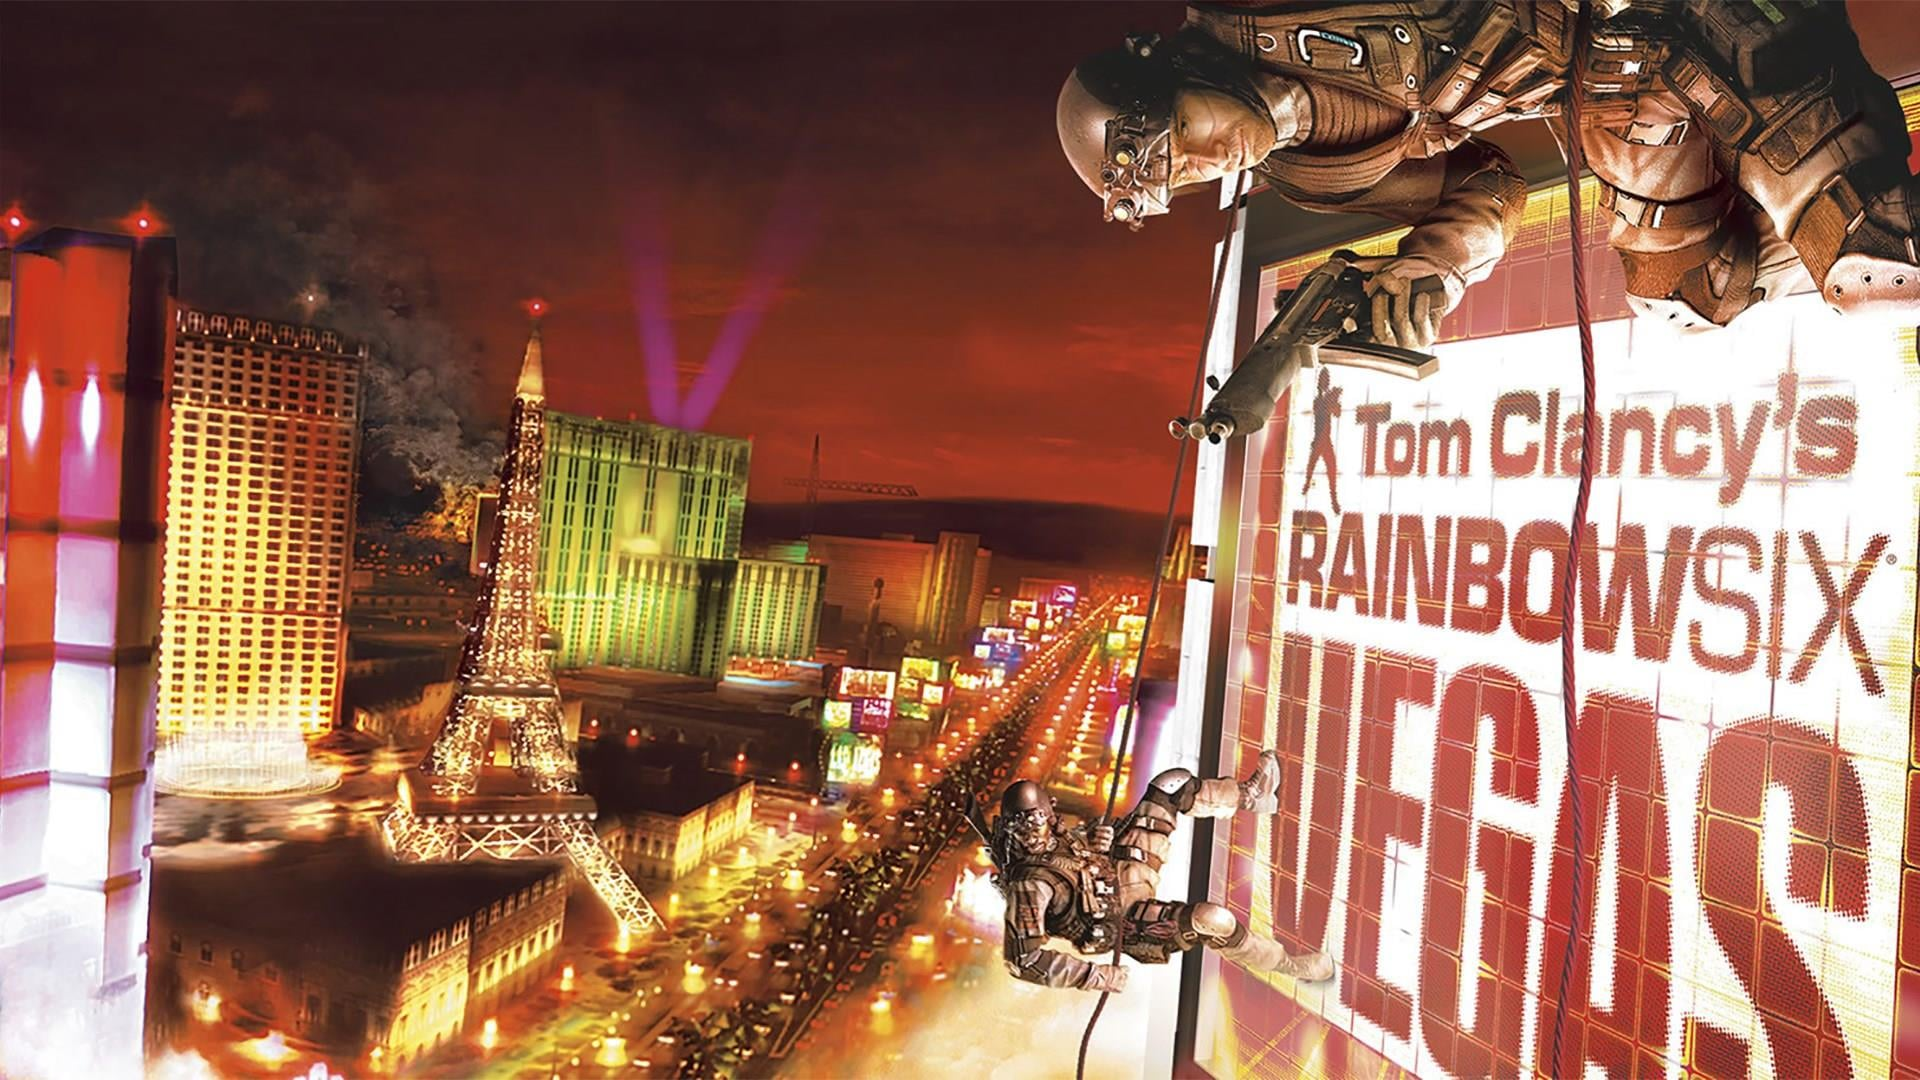 Tom Clancy's Rainbow Six Vegas ~ HeroArt